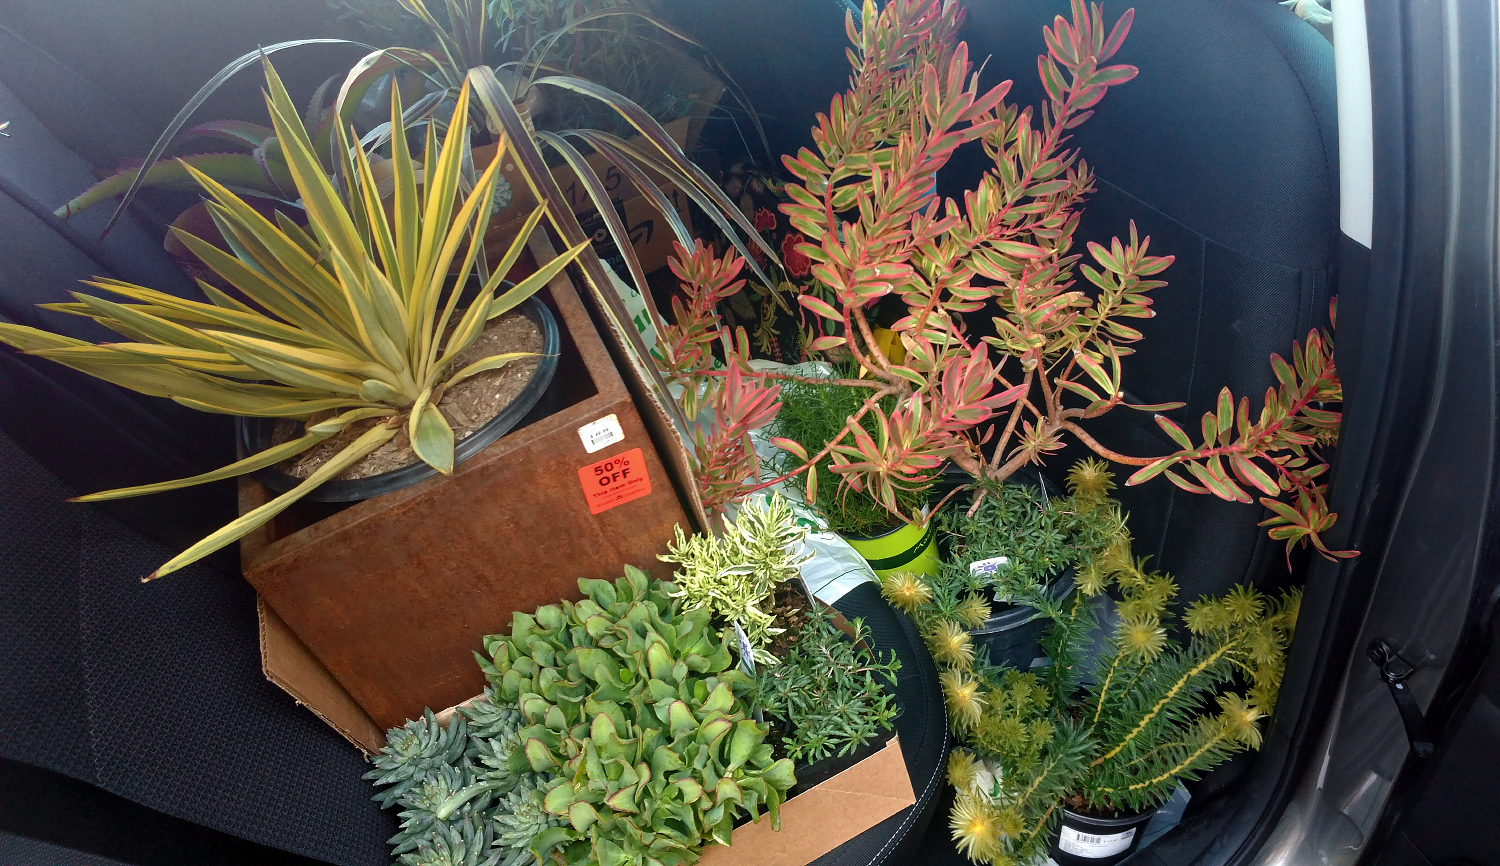 Succulents and More: Of course I\'m buying plants on my trip!